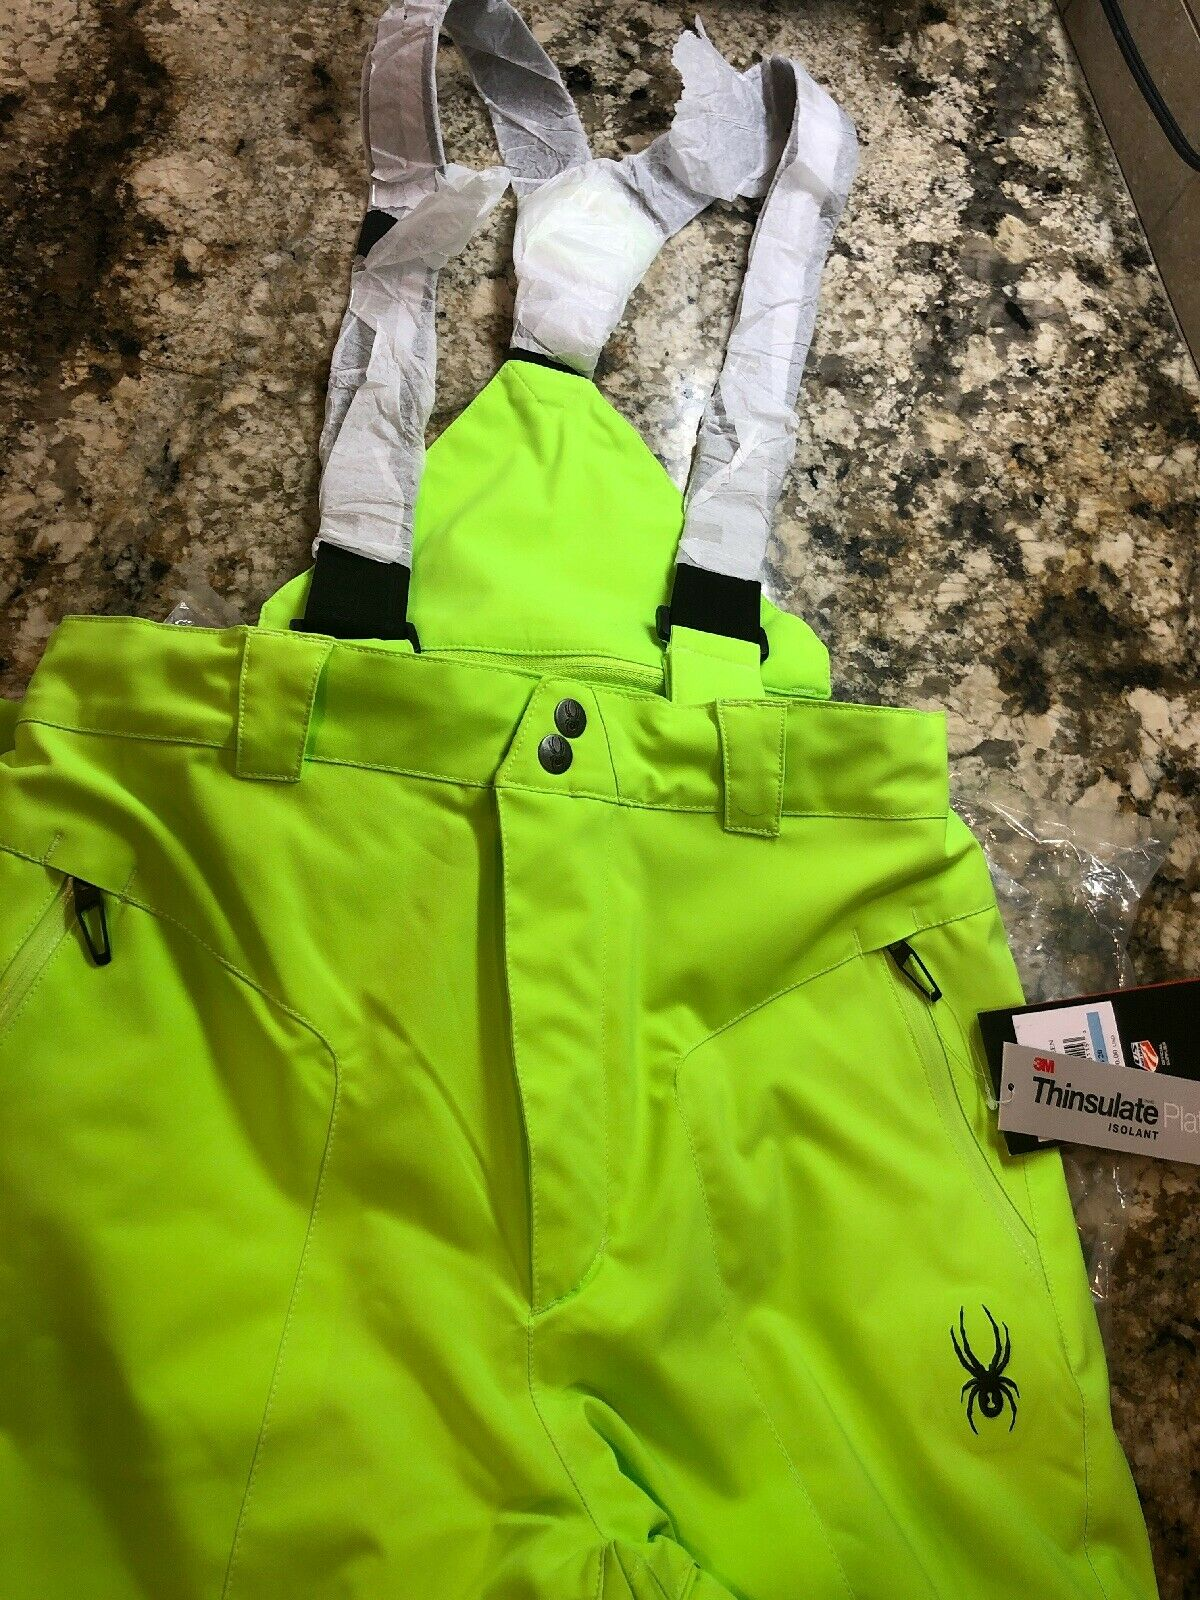 NEW   190 BOYS SPYDER SKI   SNOWBOARD  BORMIO  INSULATED PANTS BIBS  wholesale price and reliable quality